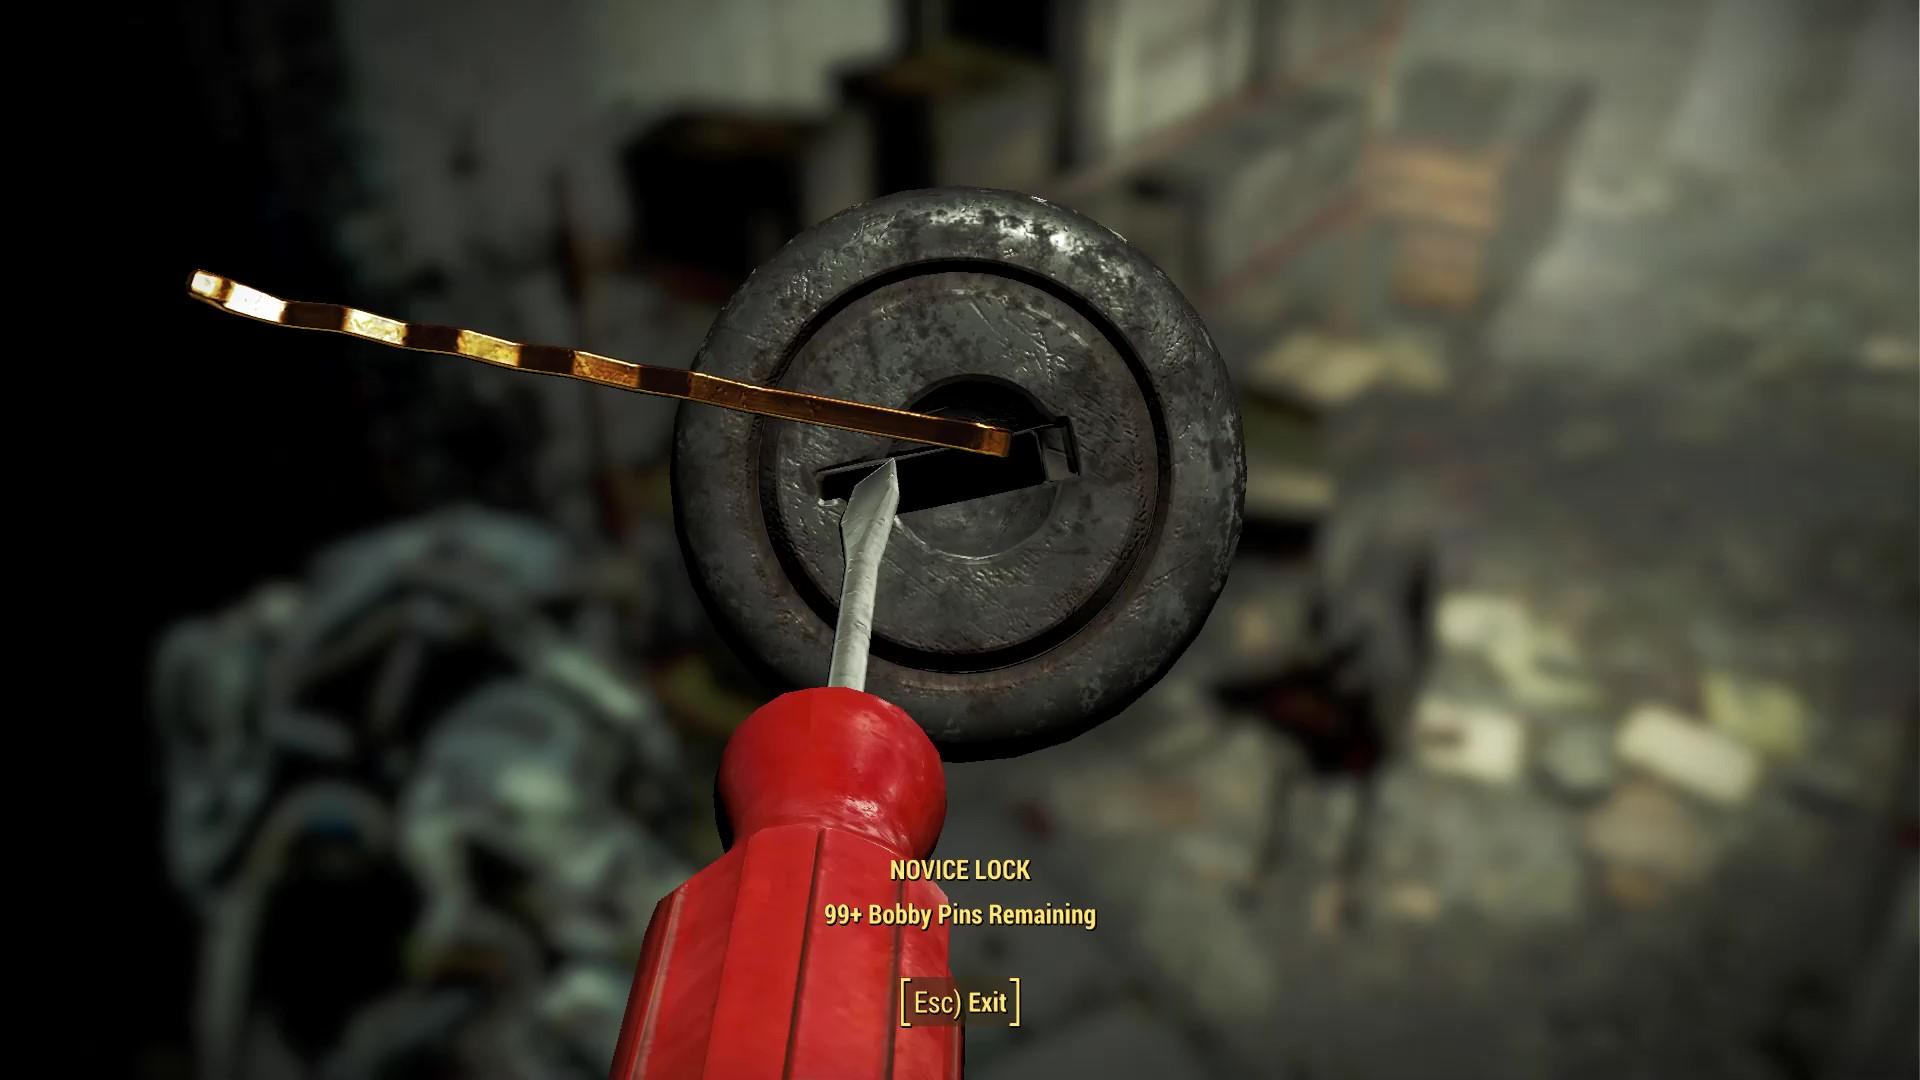 Fallout 4 Lockpicking Guide How To Pick Locks To Gain Items